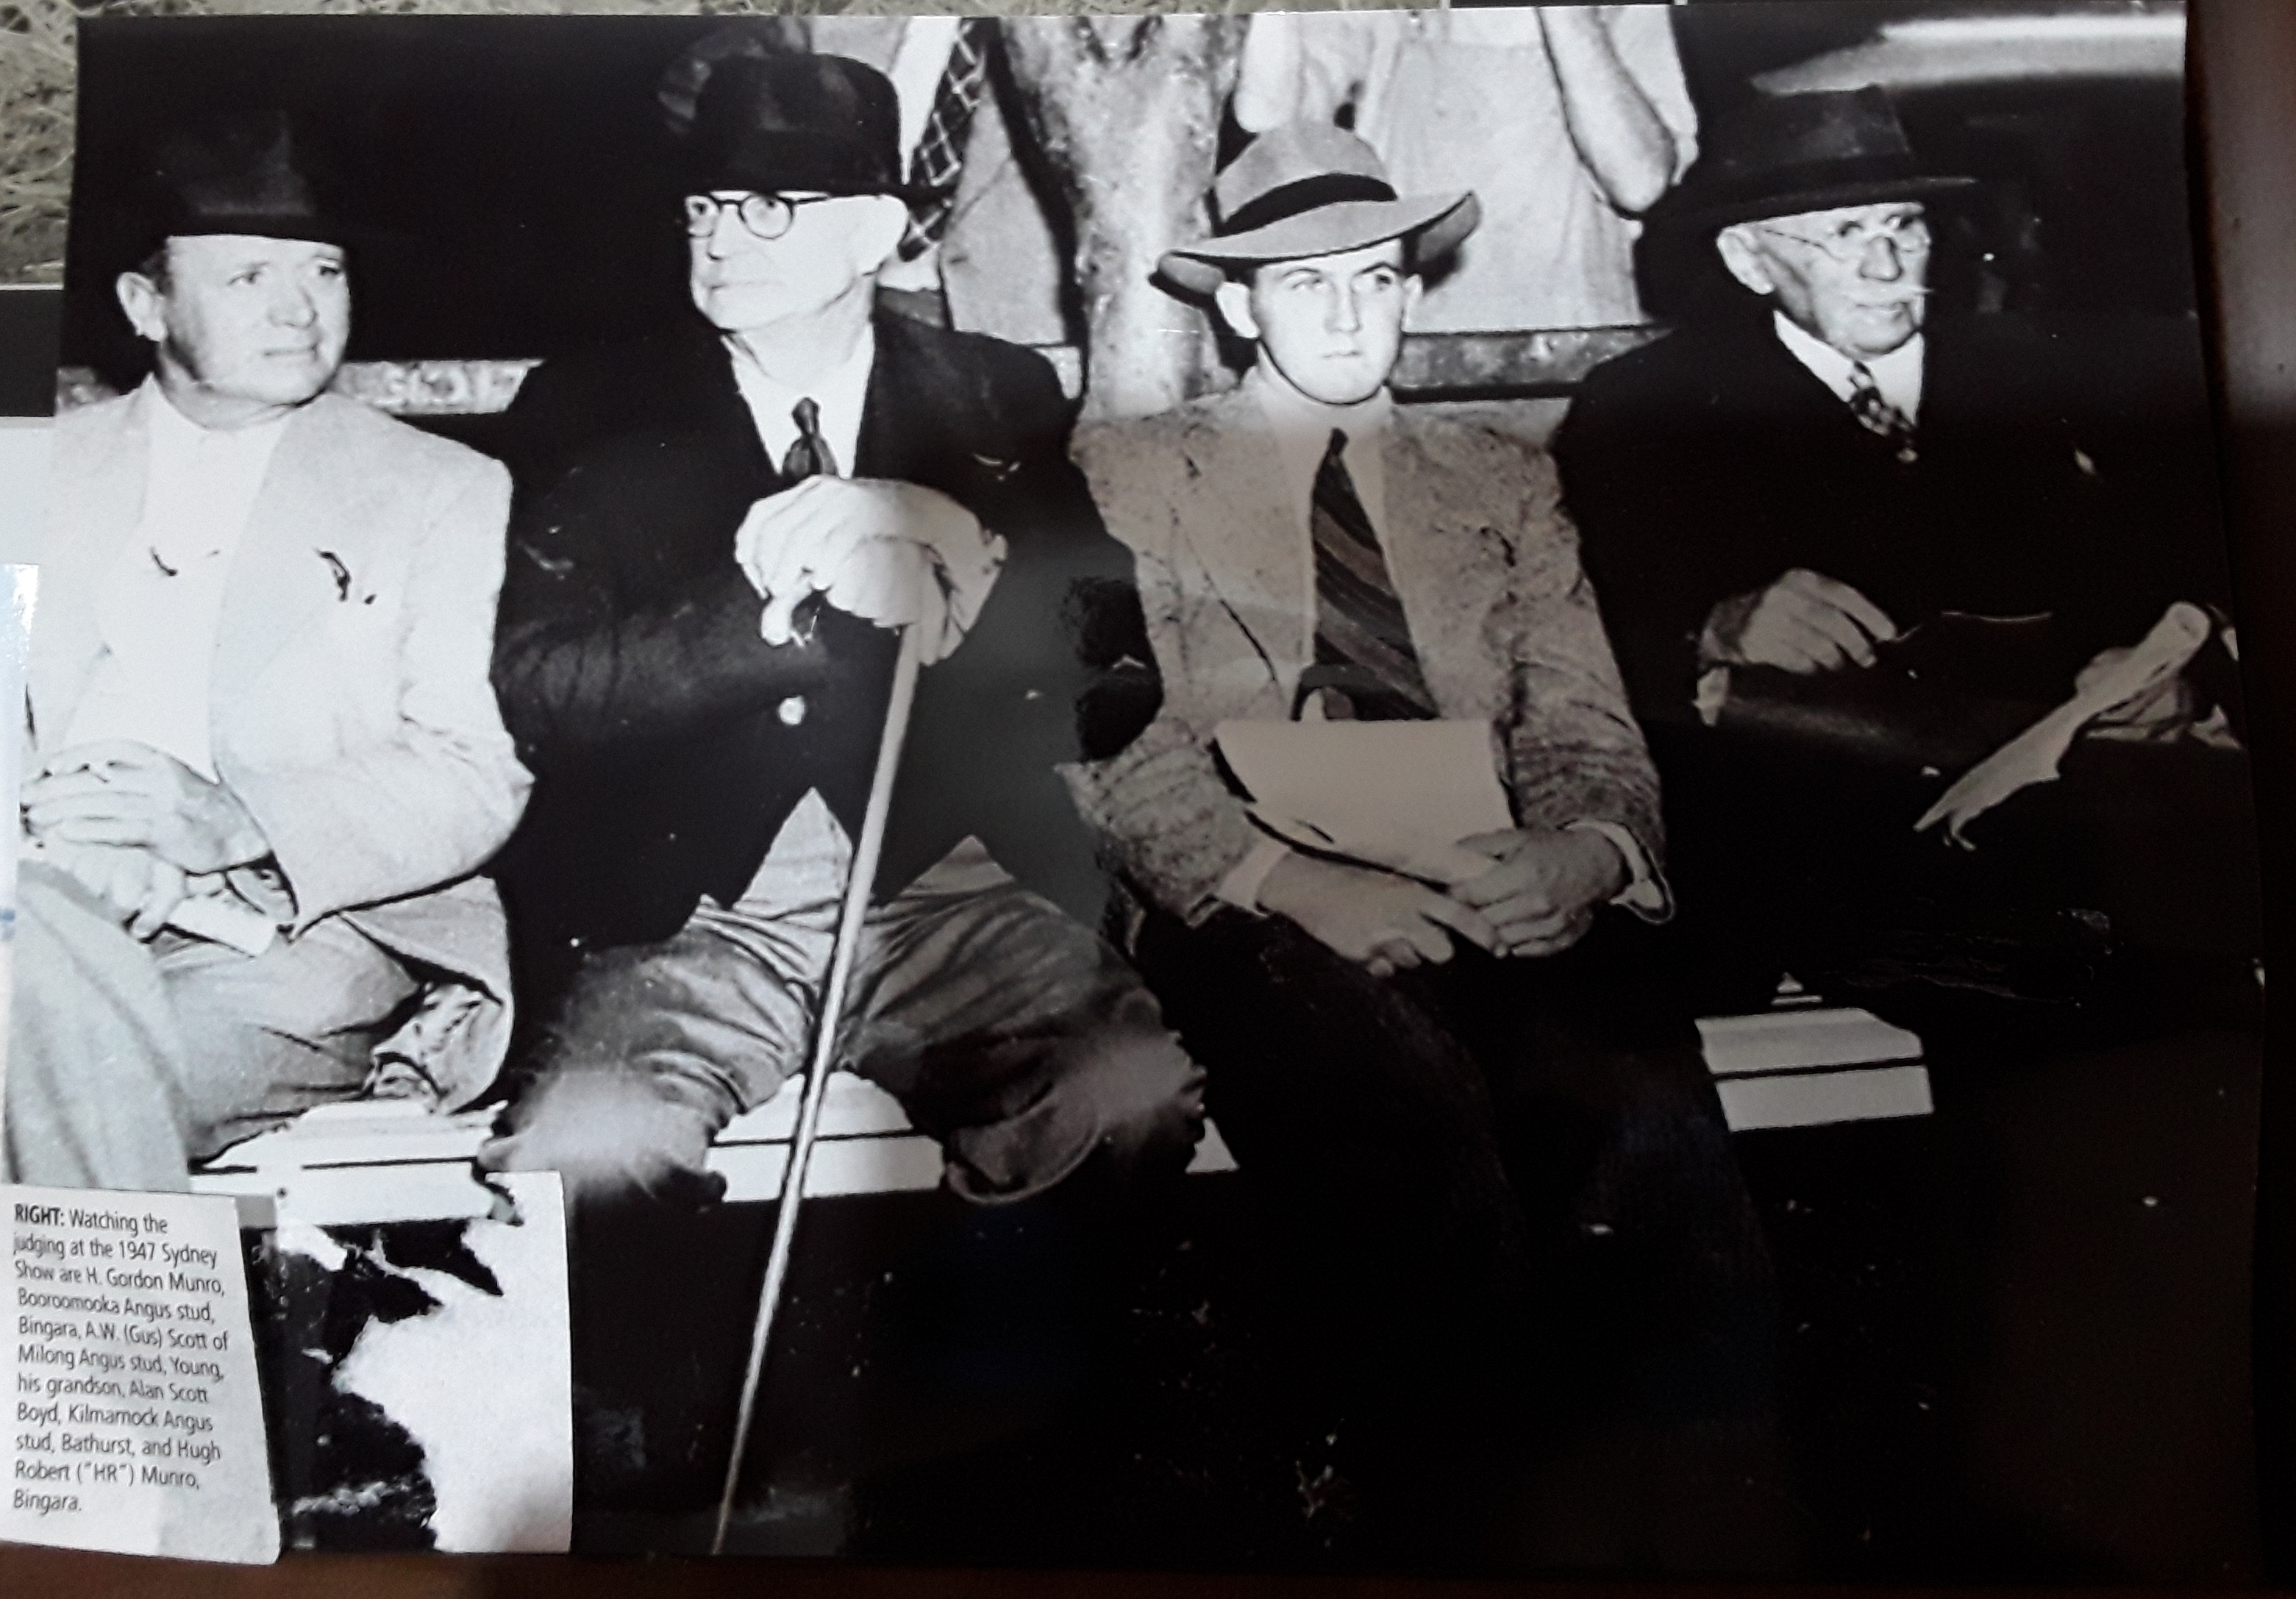 Watching the judging at the 1947 Sydney Show are H. Gordon Munro, Booroomooka Angus stud, Bingara.  A.W (Gus) Scott of Milong Angus stud, Young, his grandosn Alan Scott Boyd, Kilmarnock Angus stud, Bathurst and Hugh Robert (